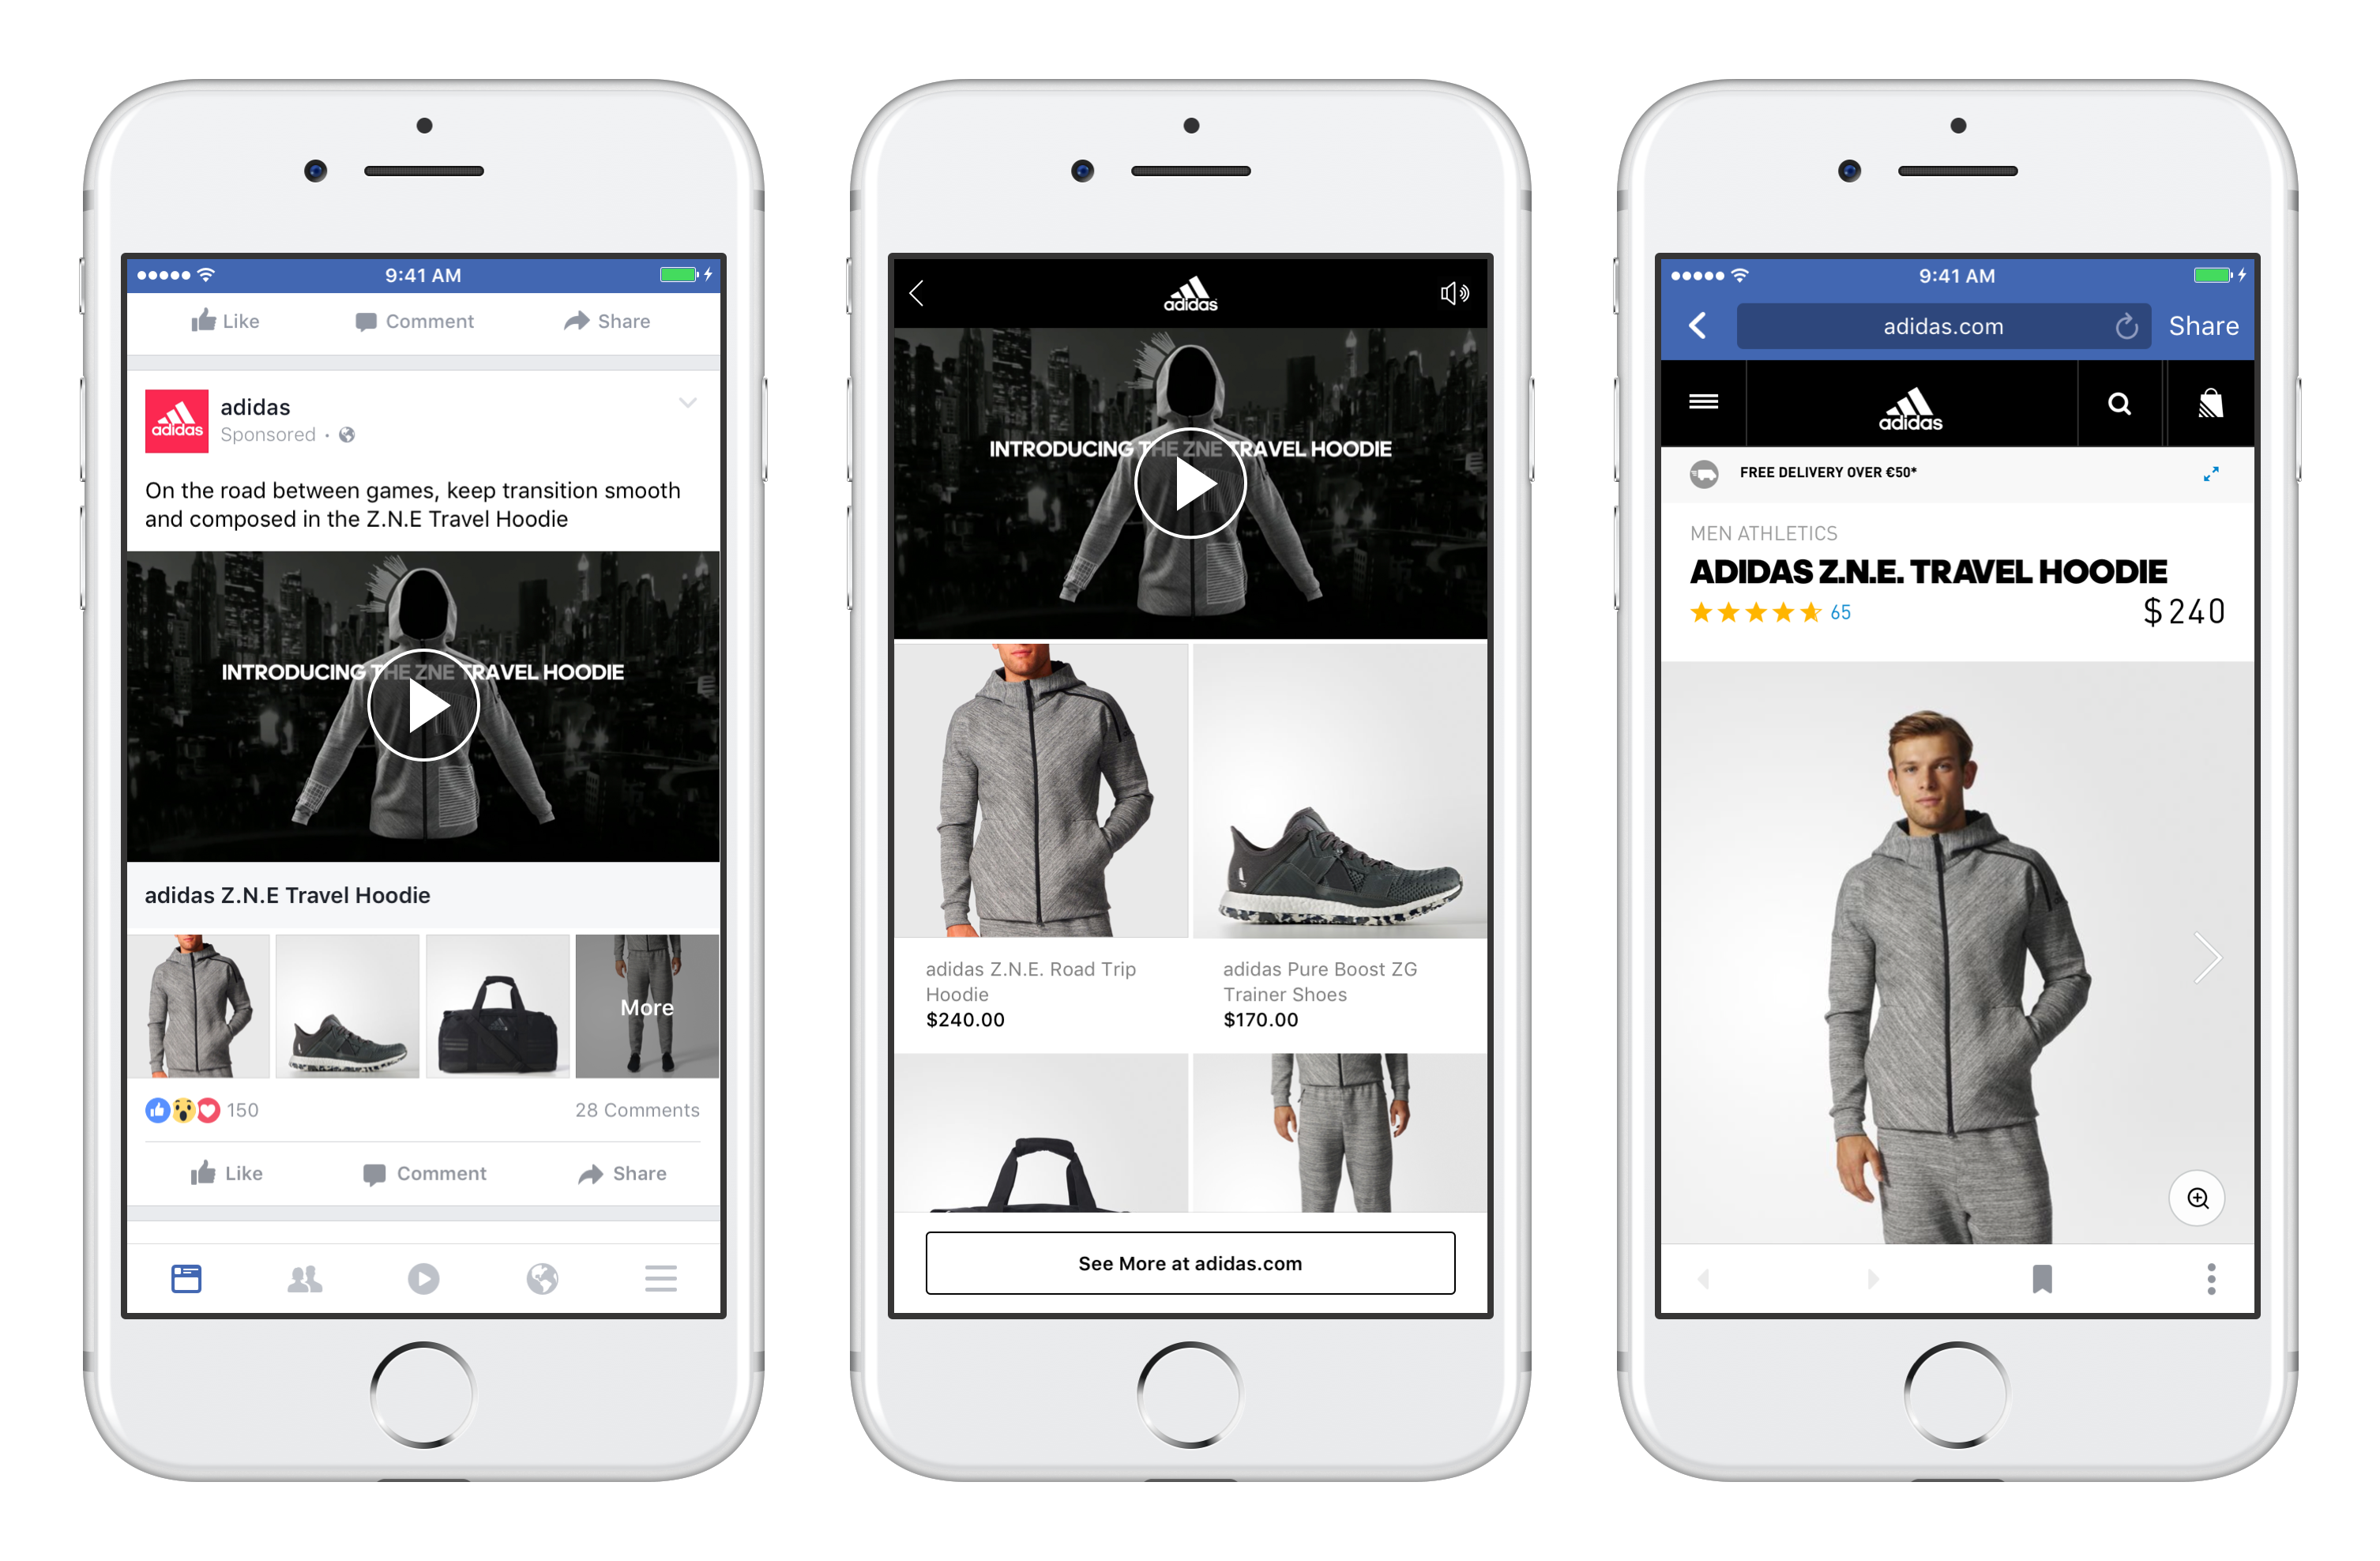 Facebook has a new type of video ad meant to get people shopping